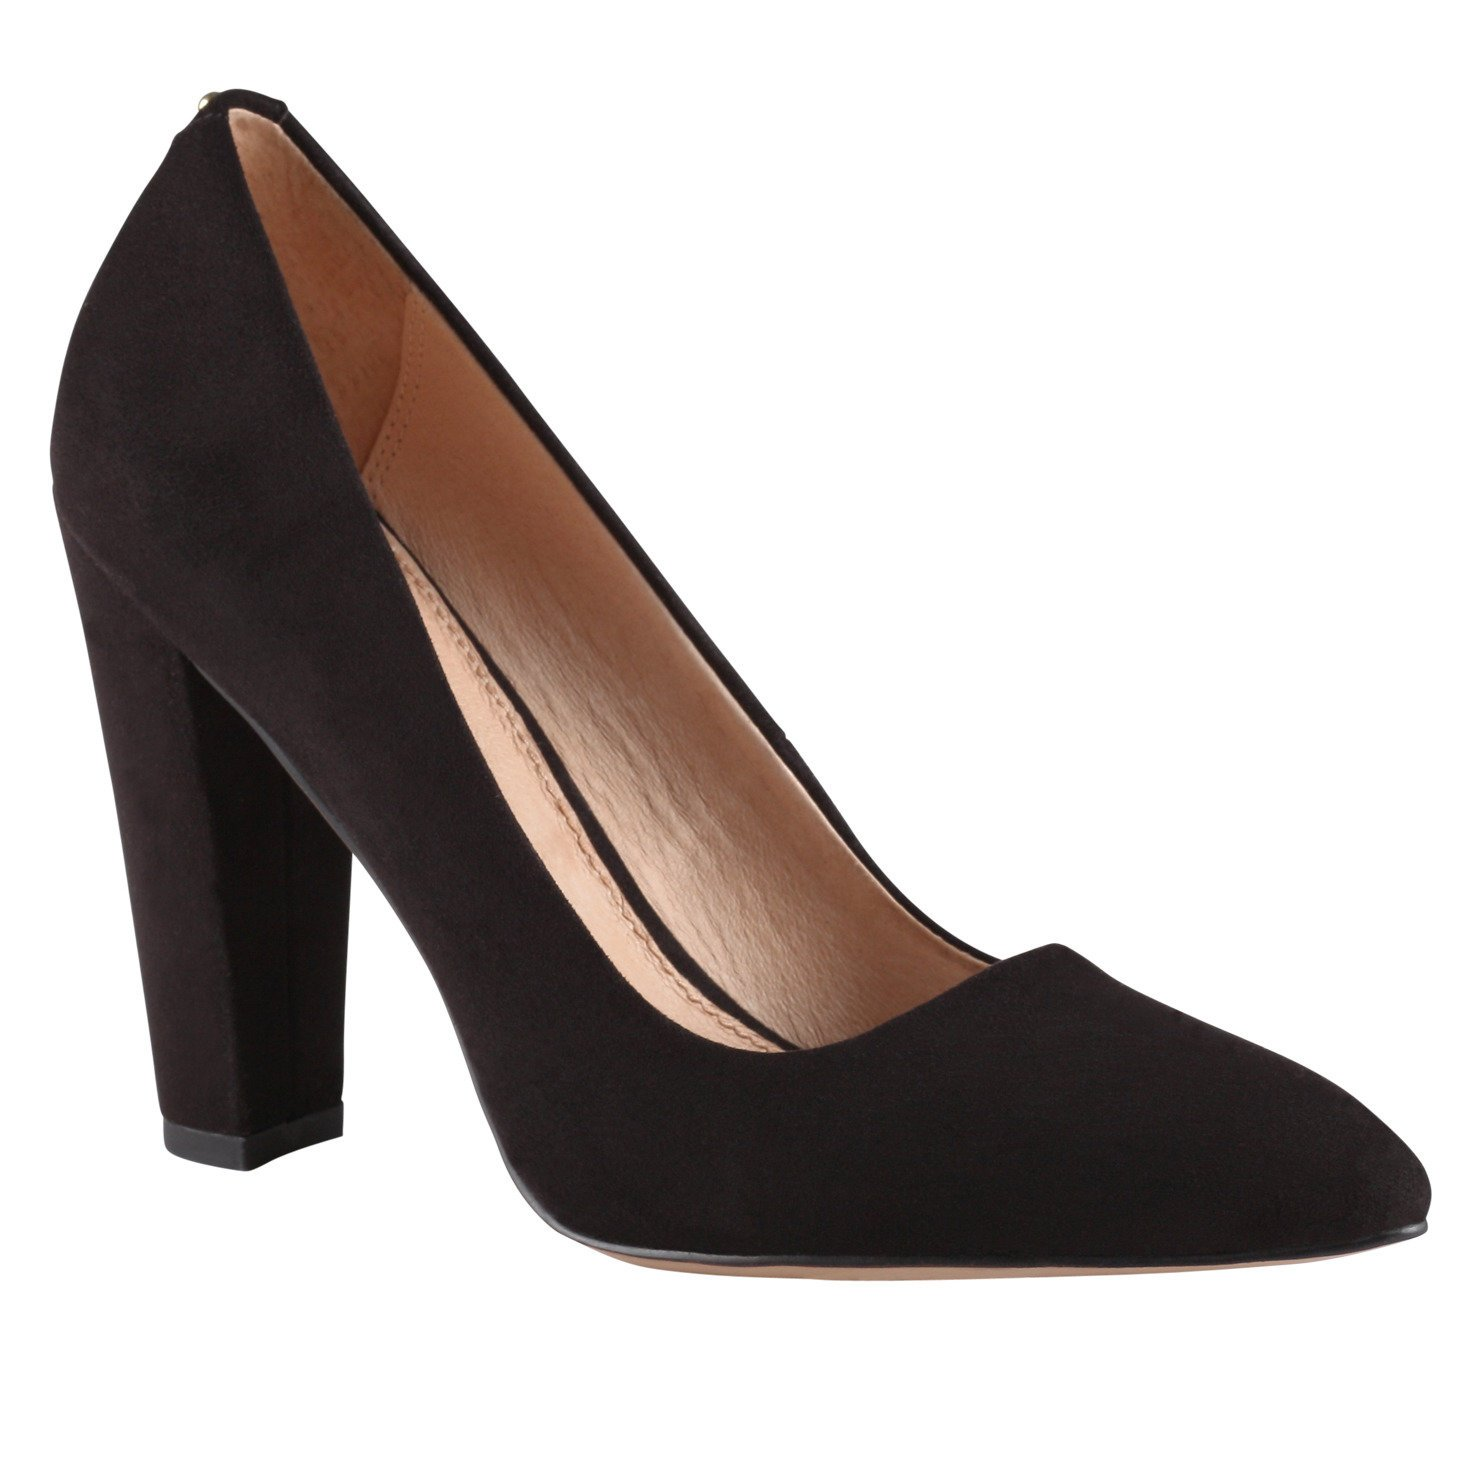 BUTIMBA - women's high heels shoes for from ALDO | Epic Wishlist